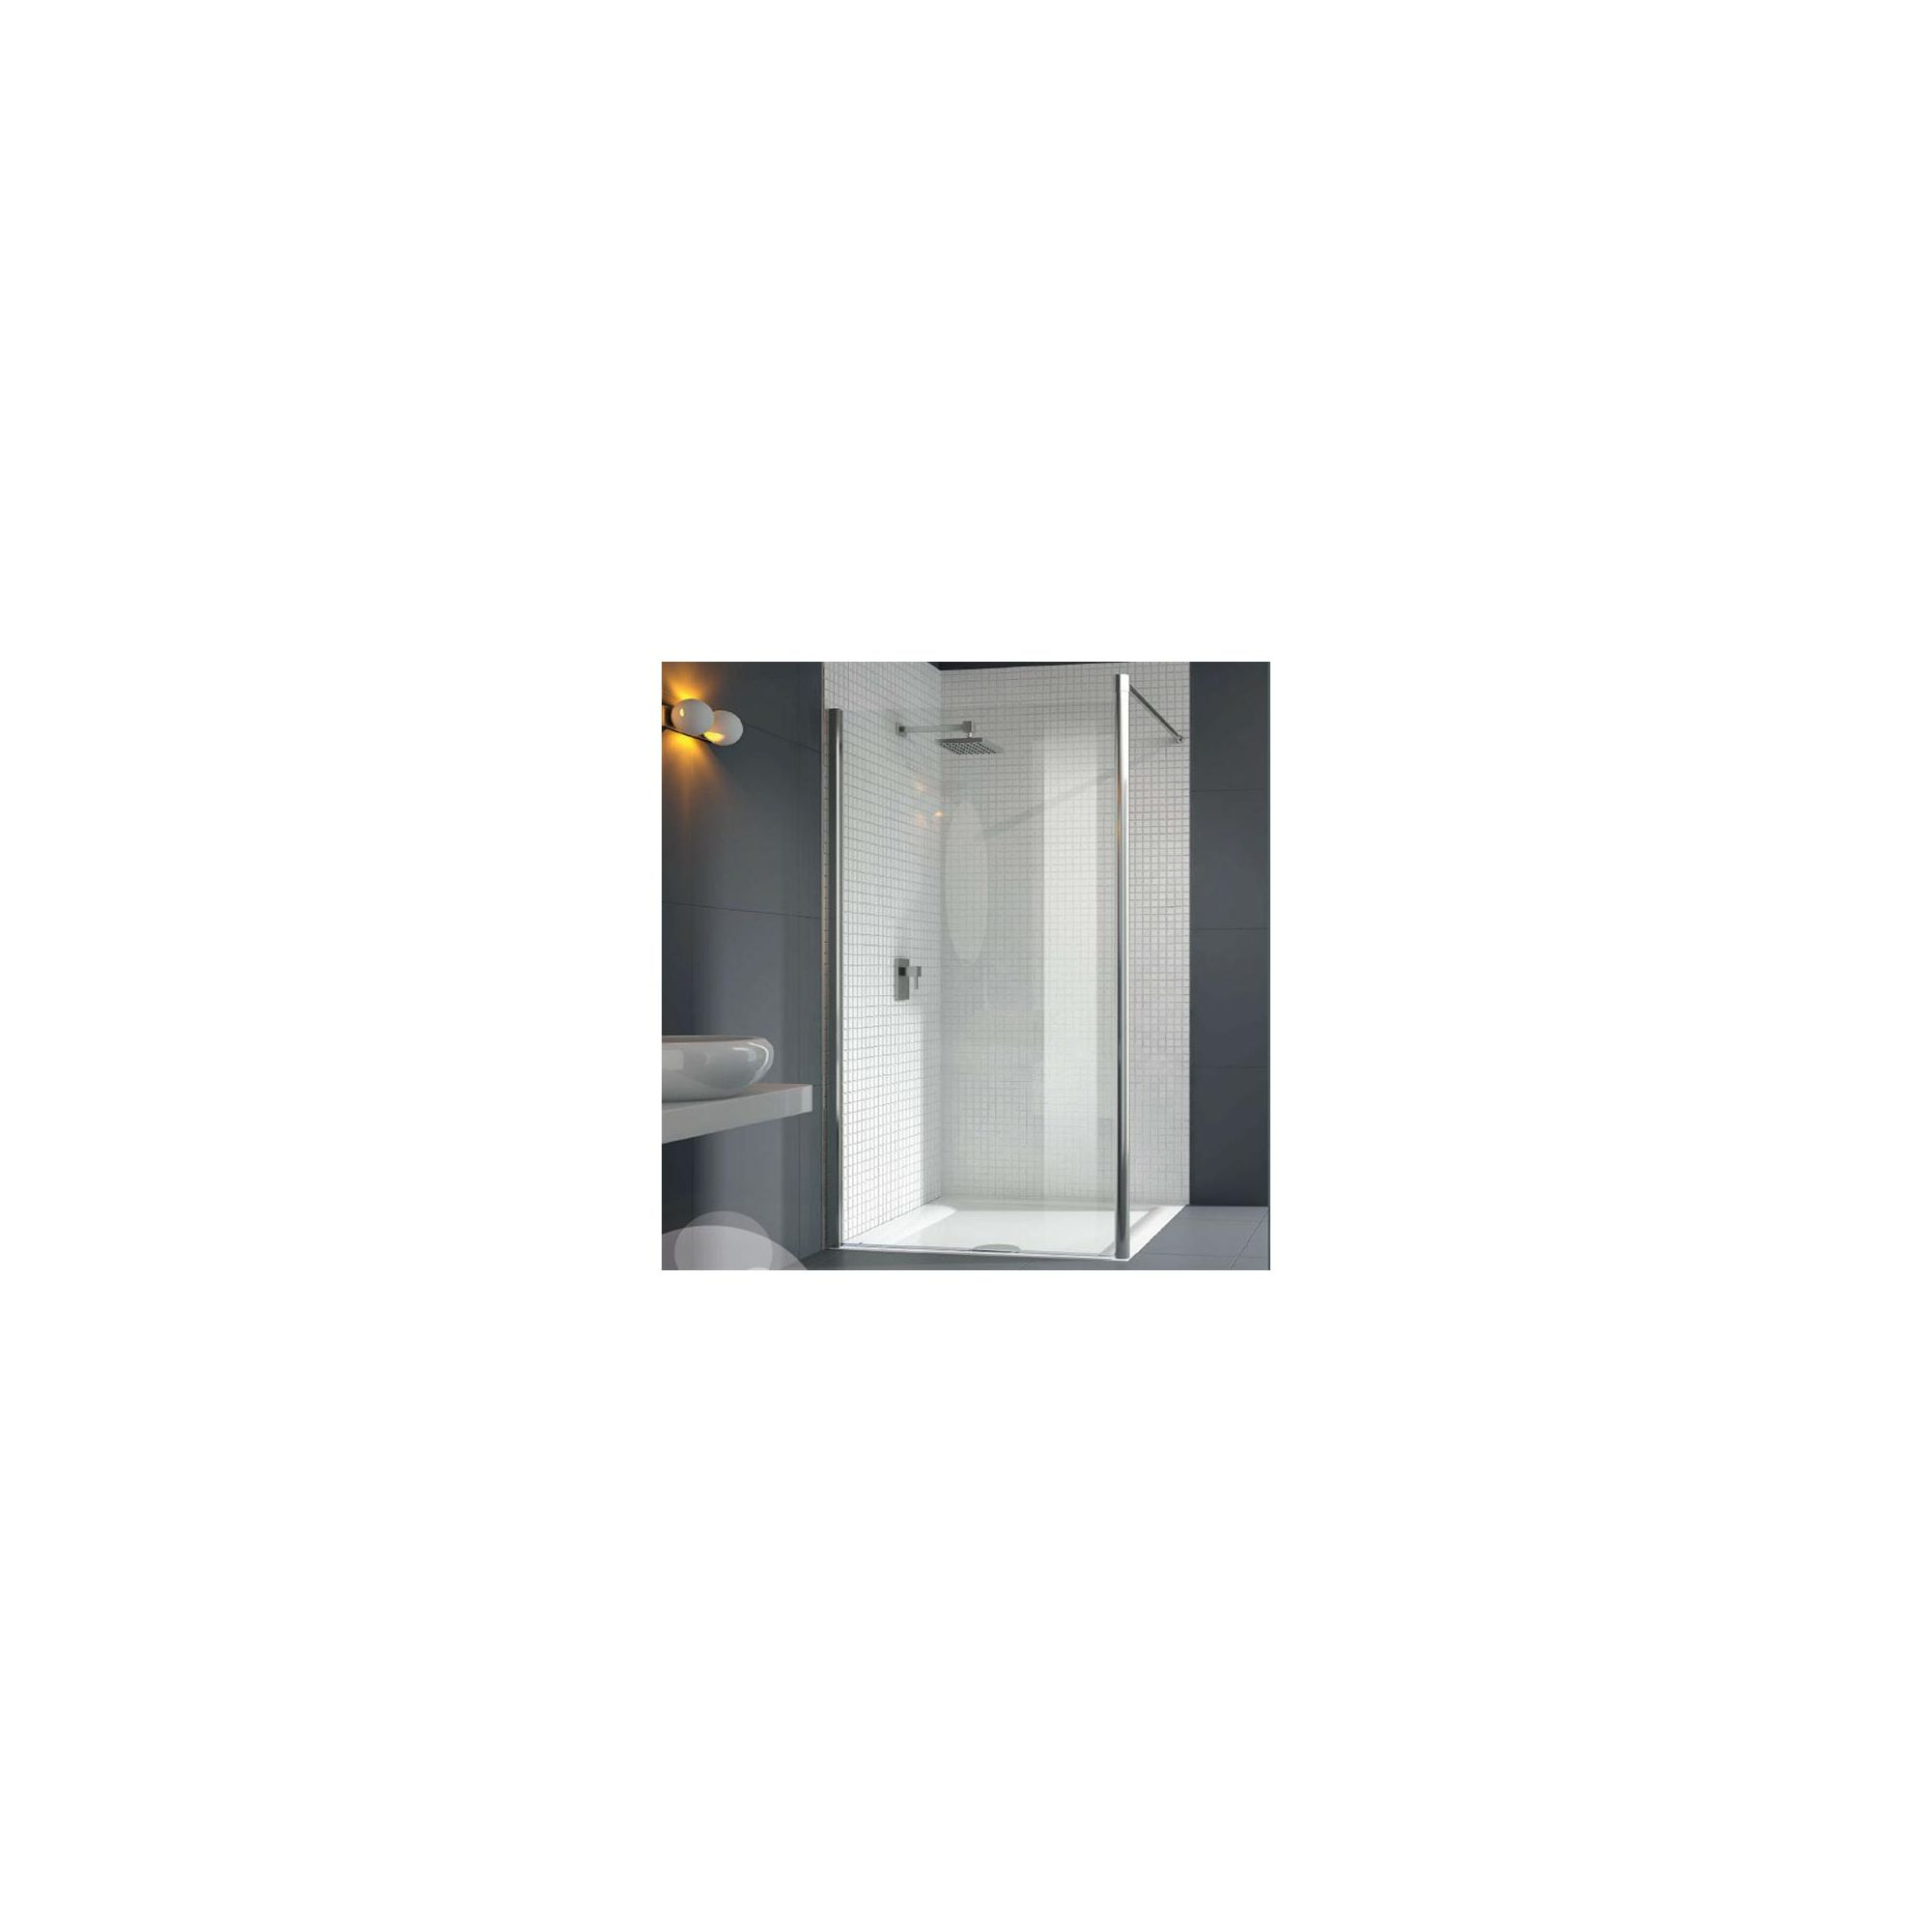 Merlyn Vivid Six Wet Room Shower Enclosure, 800mm x 800mm, Horizontal Support Bar, Low Profile Tray, 6mm Glass at Tesco Direct